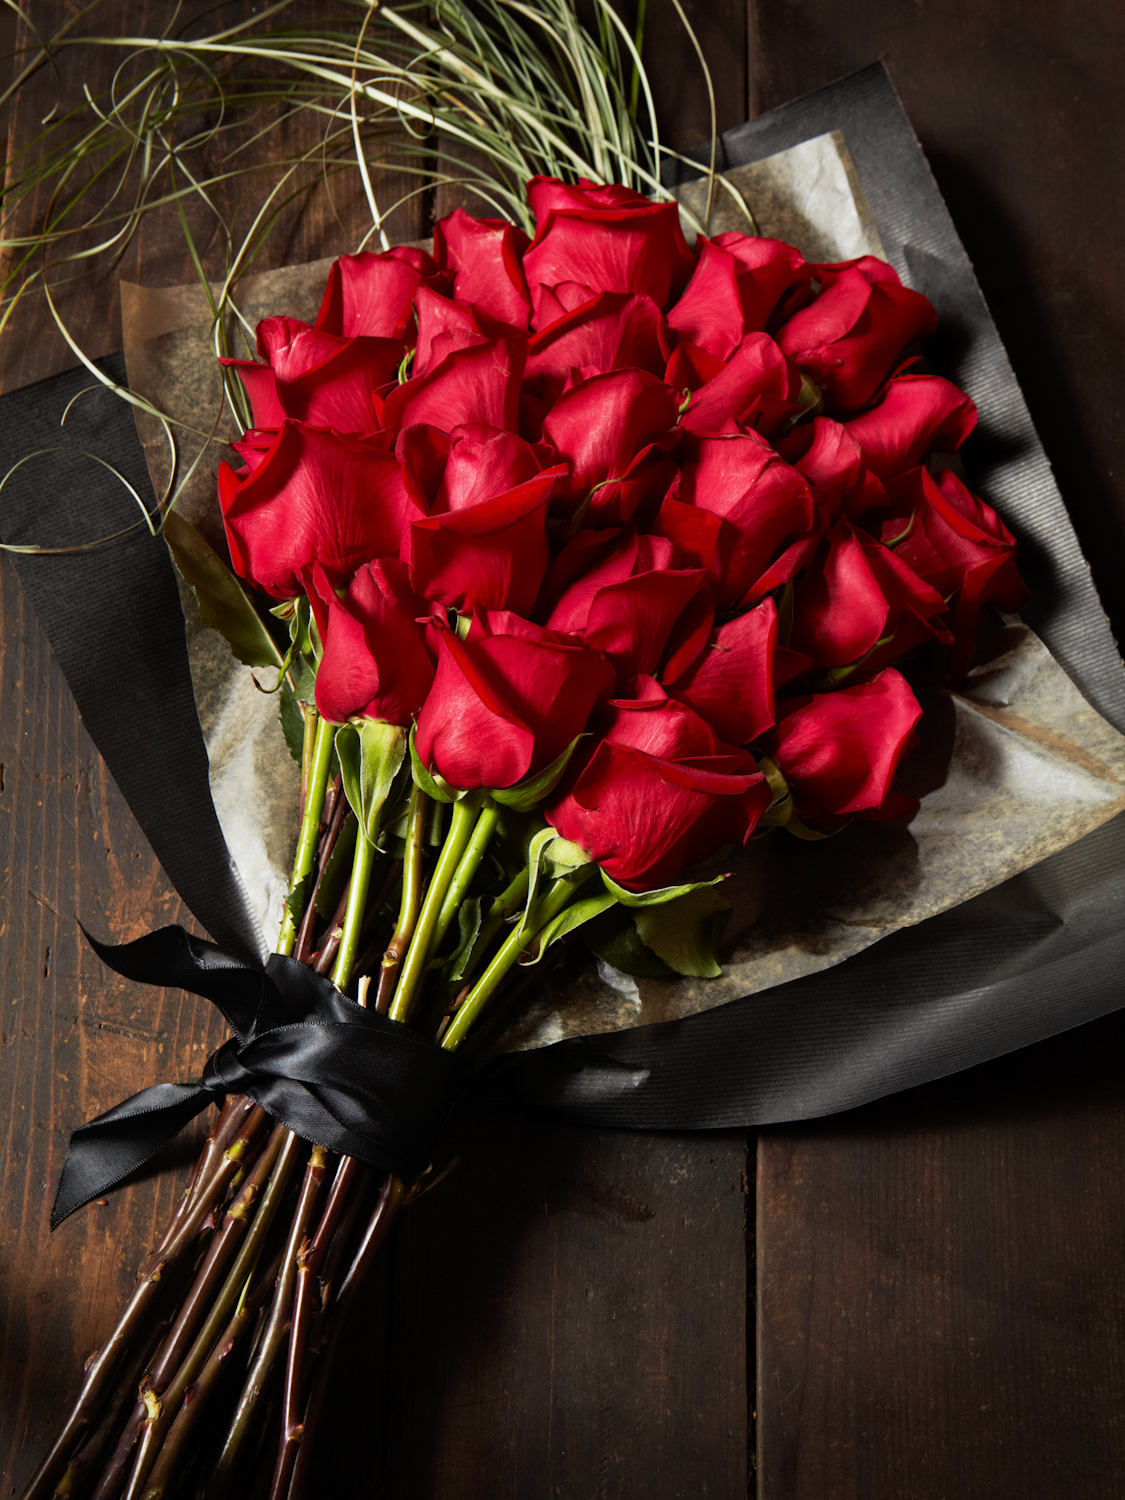 Beautiful red roses pictures photos and images for facebook beautiful red roses izmirmasajfo